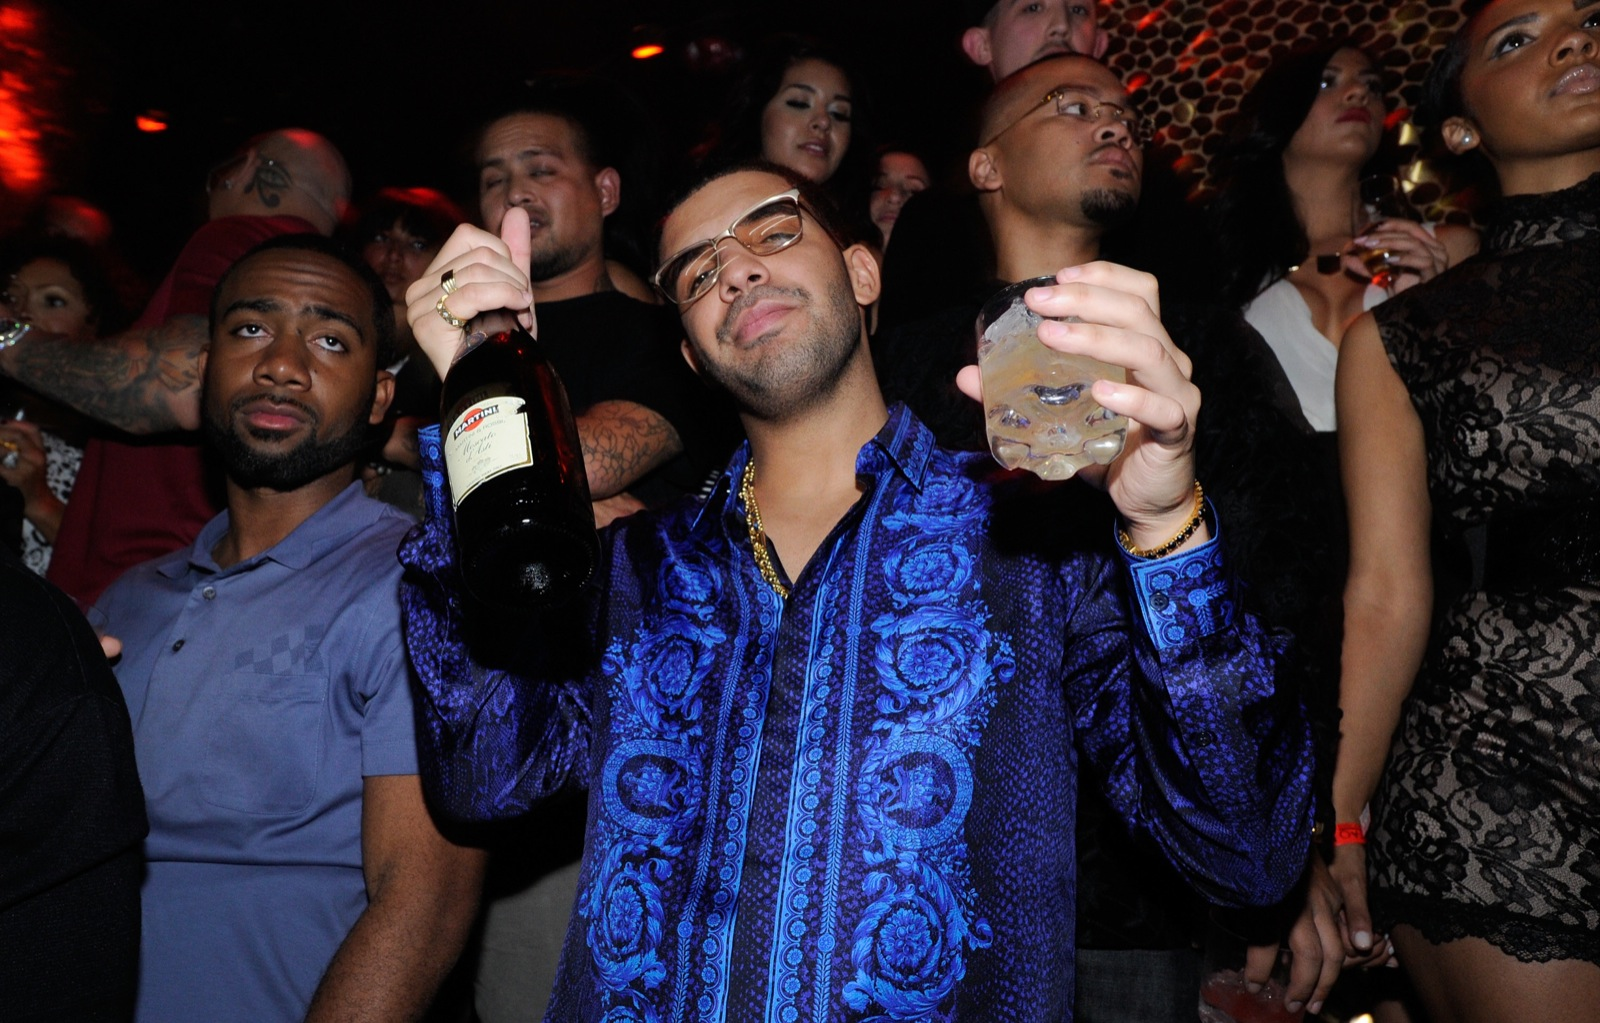 Drake celebrates his 25th birthday at TAO nightclub in Las Vegas.The party was sponsored by MARTINI Moscato d'Asti.(David Becker/Wire Image)